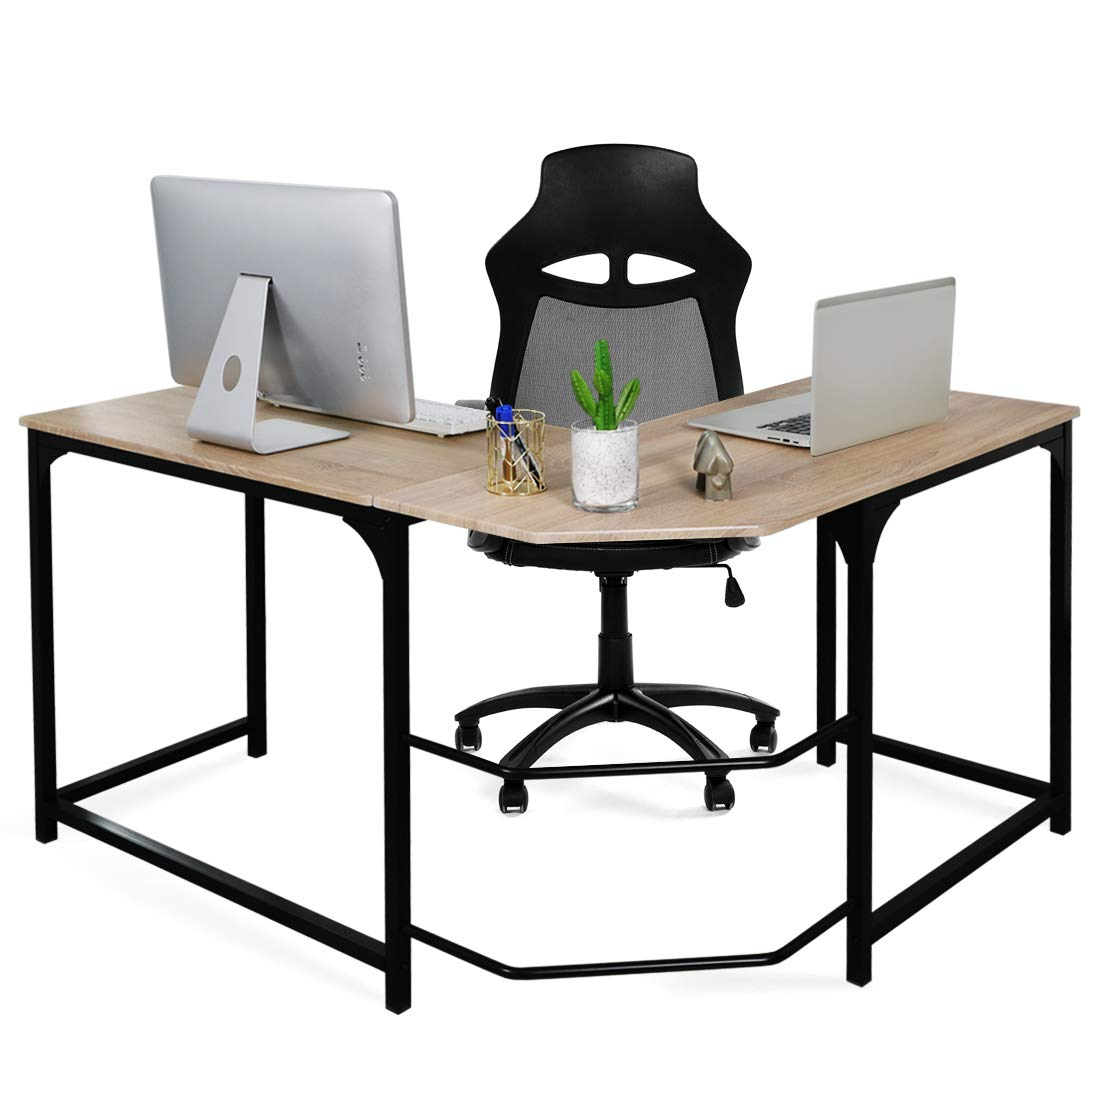 Aingoo L-Shaped Desk Large Computer Corner Desk PC Laptop Study Gaming Table Workstation for Home Office Beige